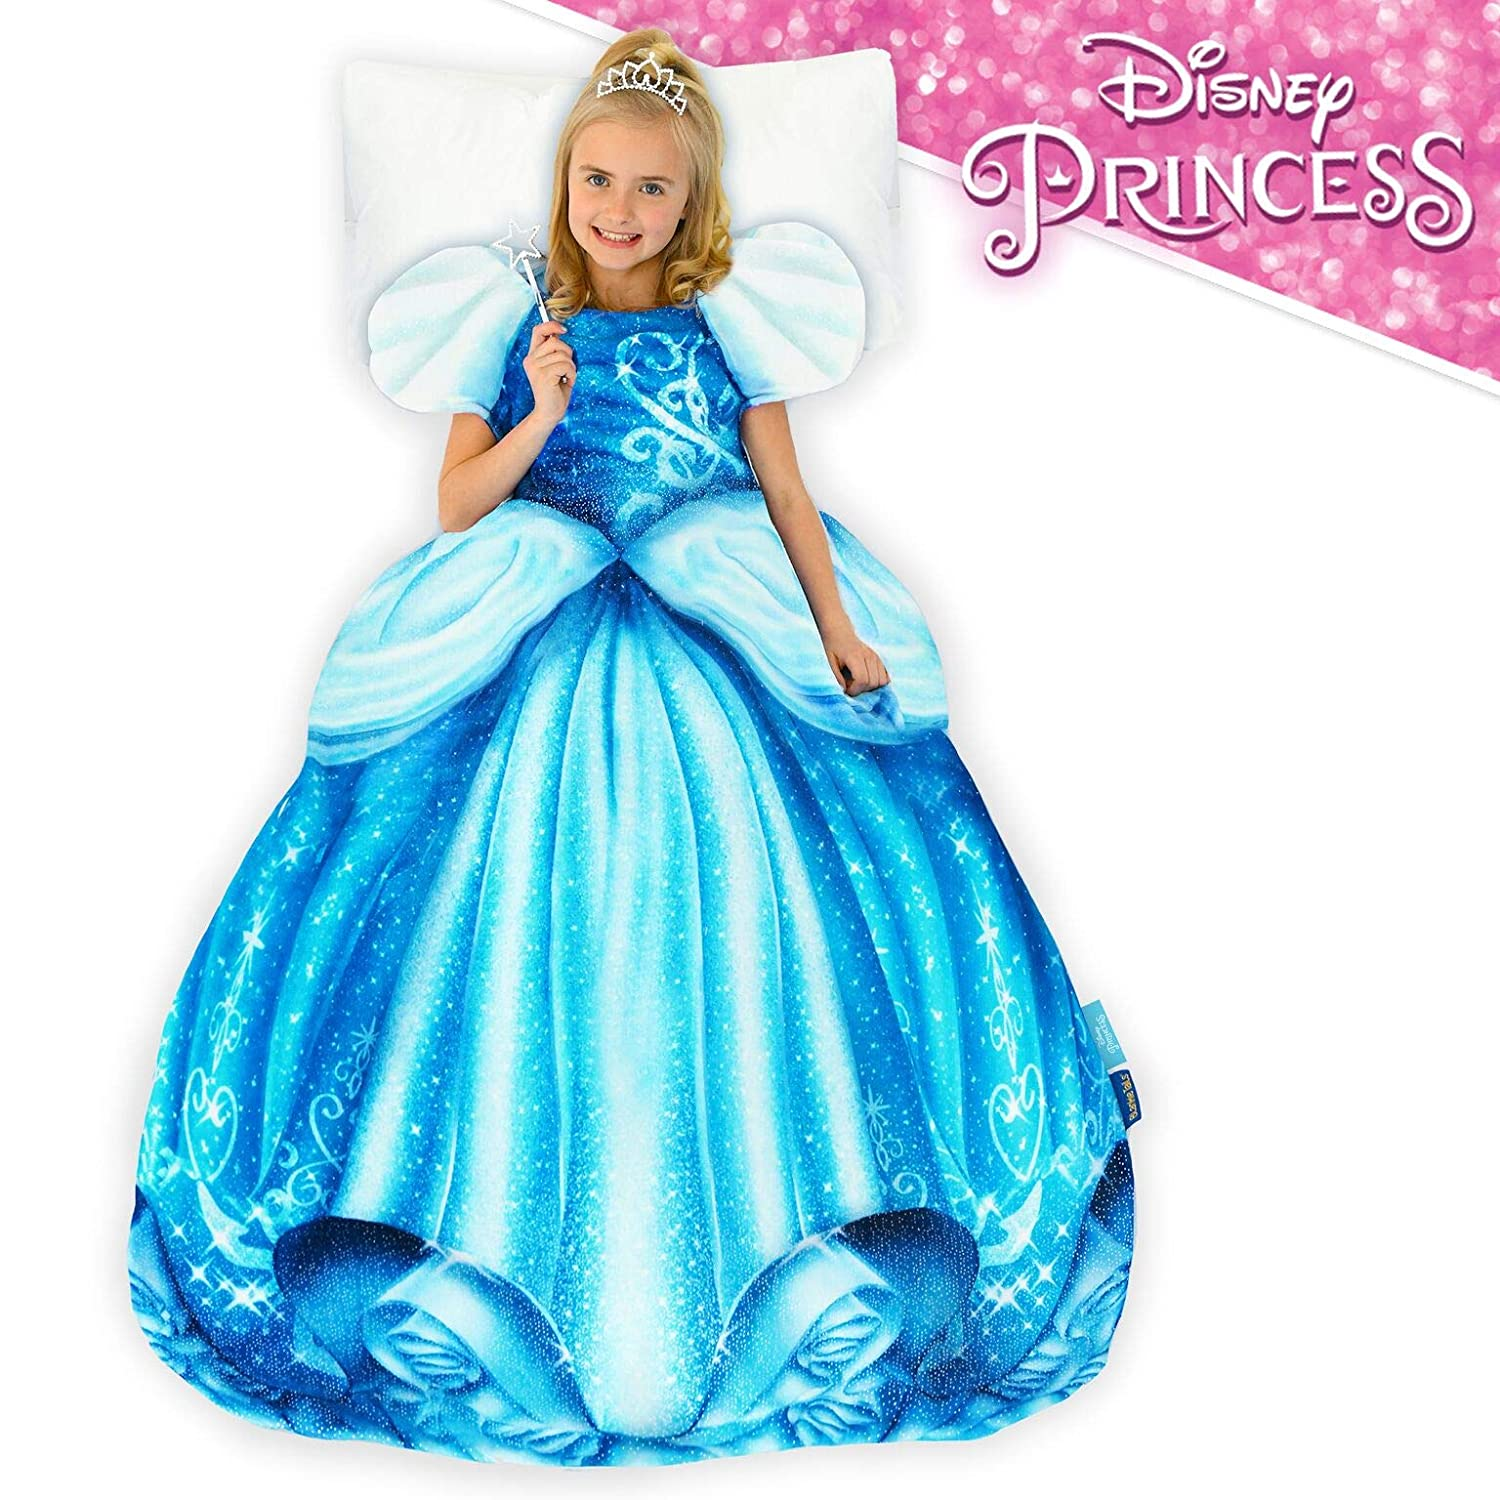 Blankie Tails Disney Princess Cinderella Dress Wearable Blanket Super Soft-Double Sided Minky Fleece for Kids- Climb Inside This Cozy Disney Princess Dress